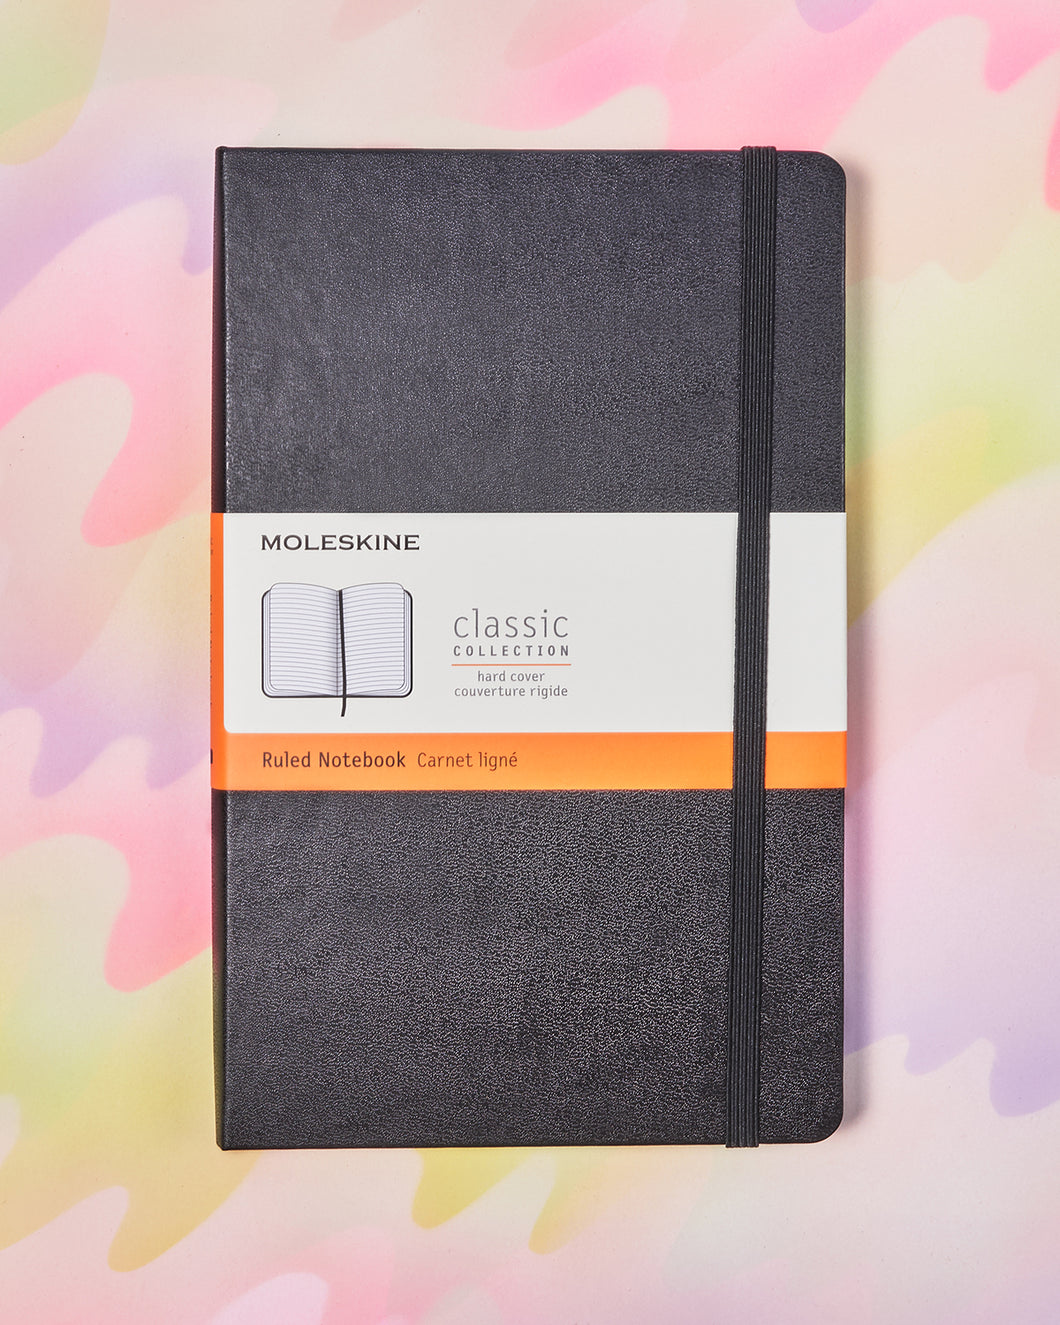 Moleskine Classic Ruled Notebook - 5x8.25